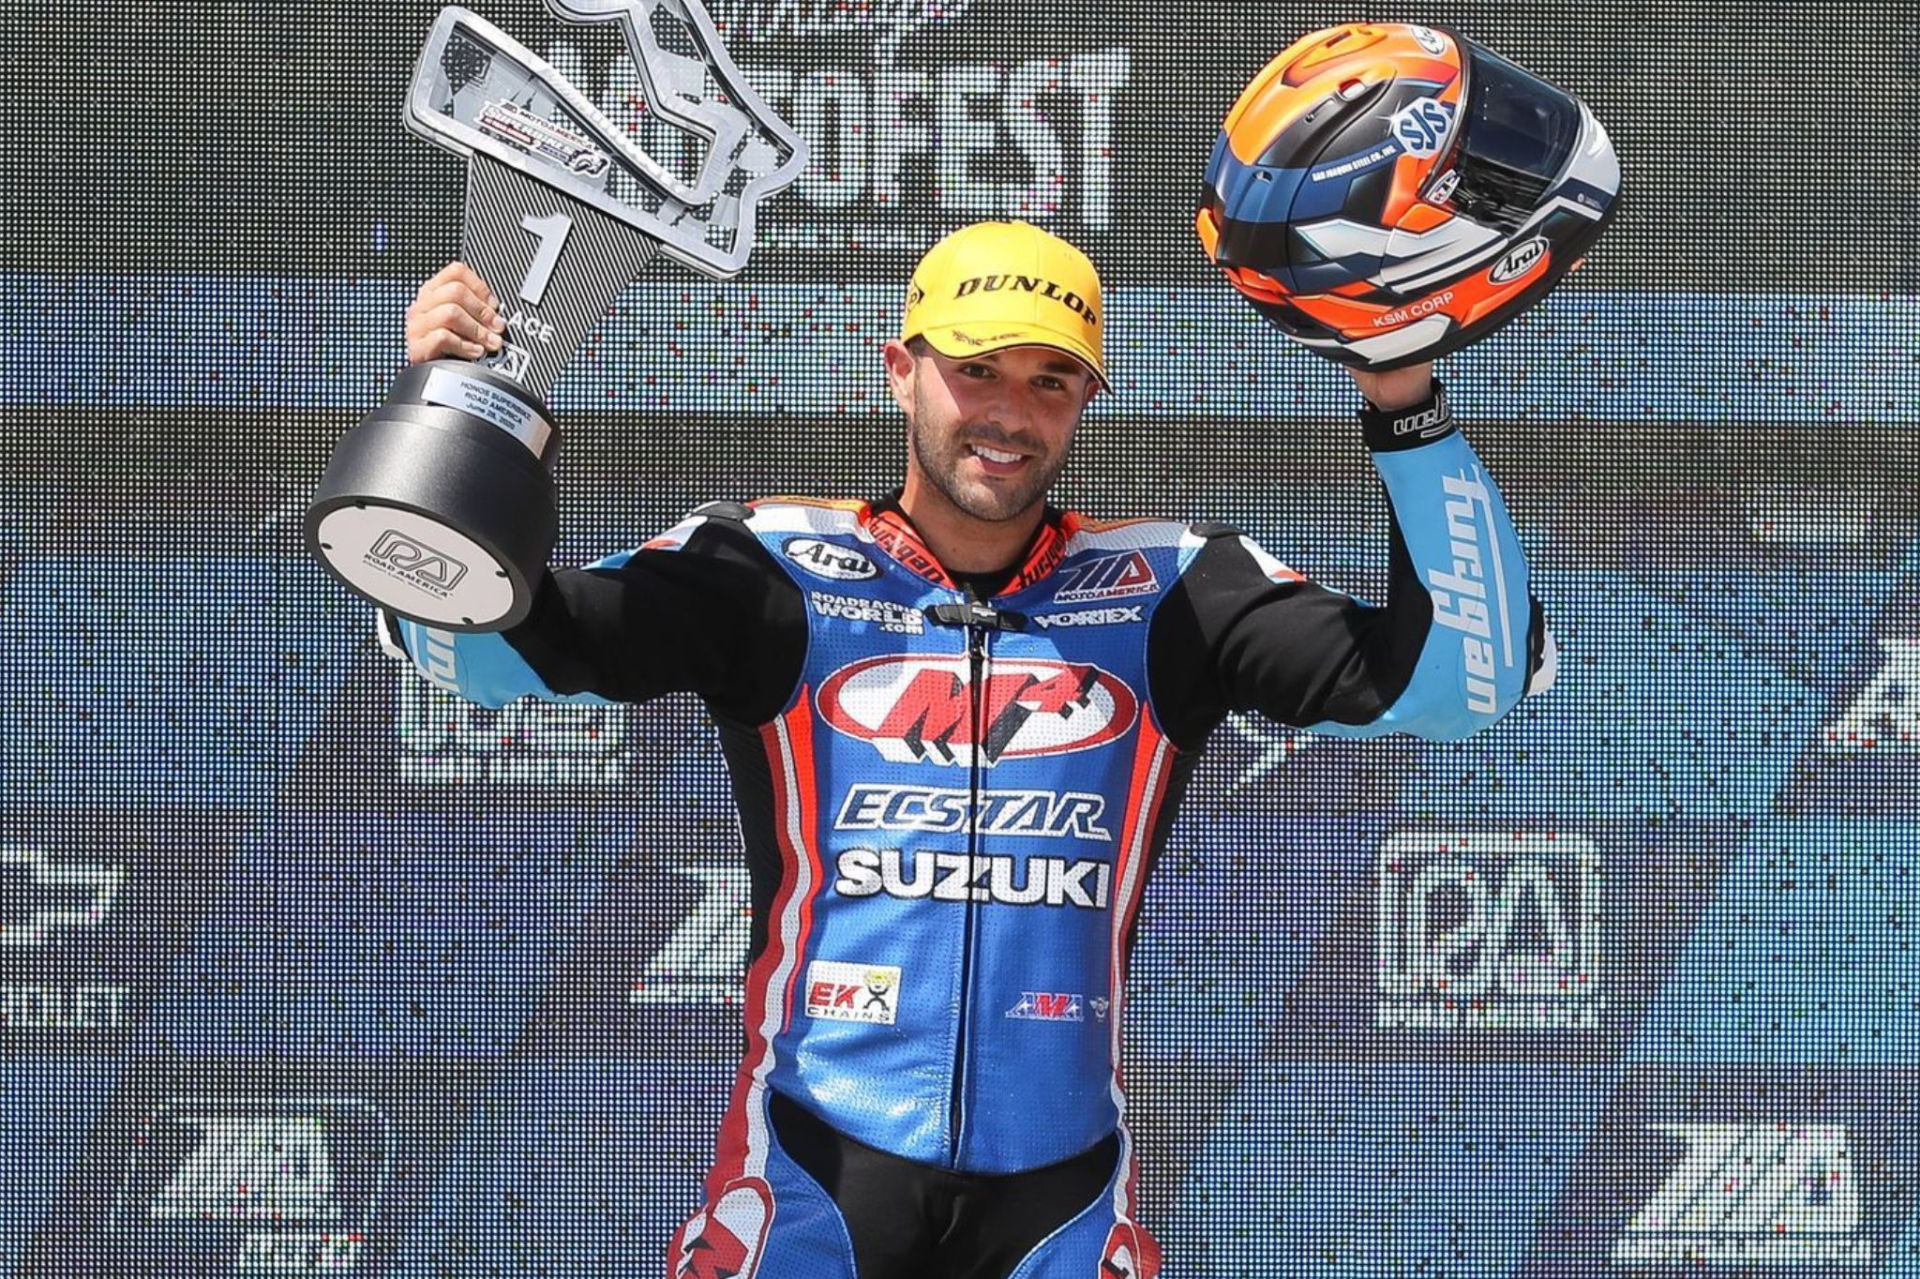 Bobby Fong grabs Superbike victory in Race 2 on his Suzuki GSX-R1000. Photo by Brian J. Nelson, courtesy Suzuki Motor of America, Inc.